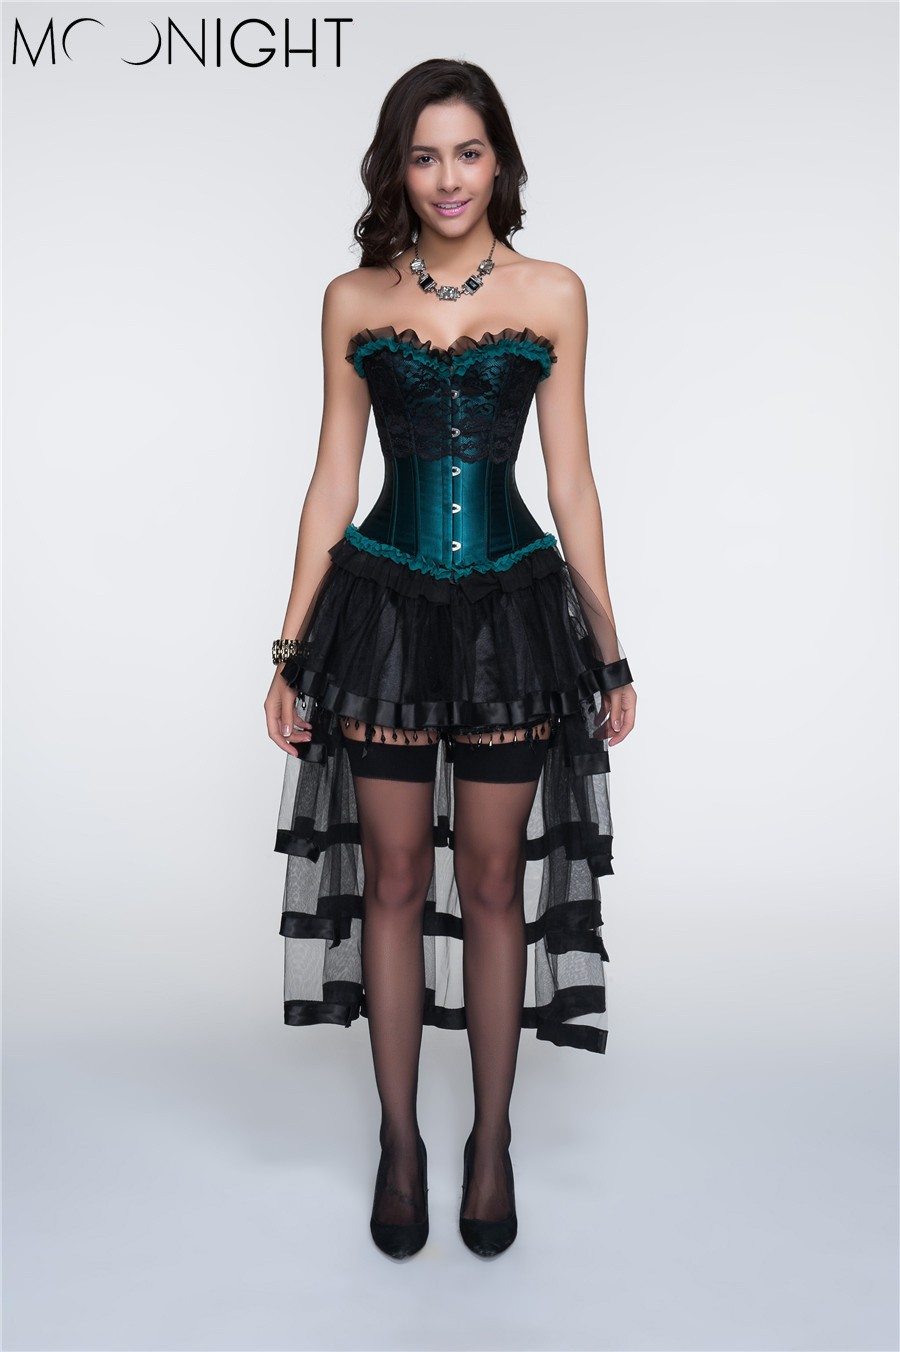 8111black green corset+7084skirt